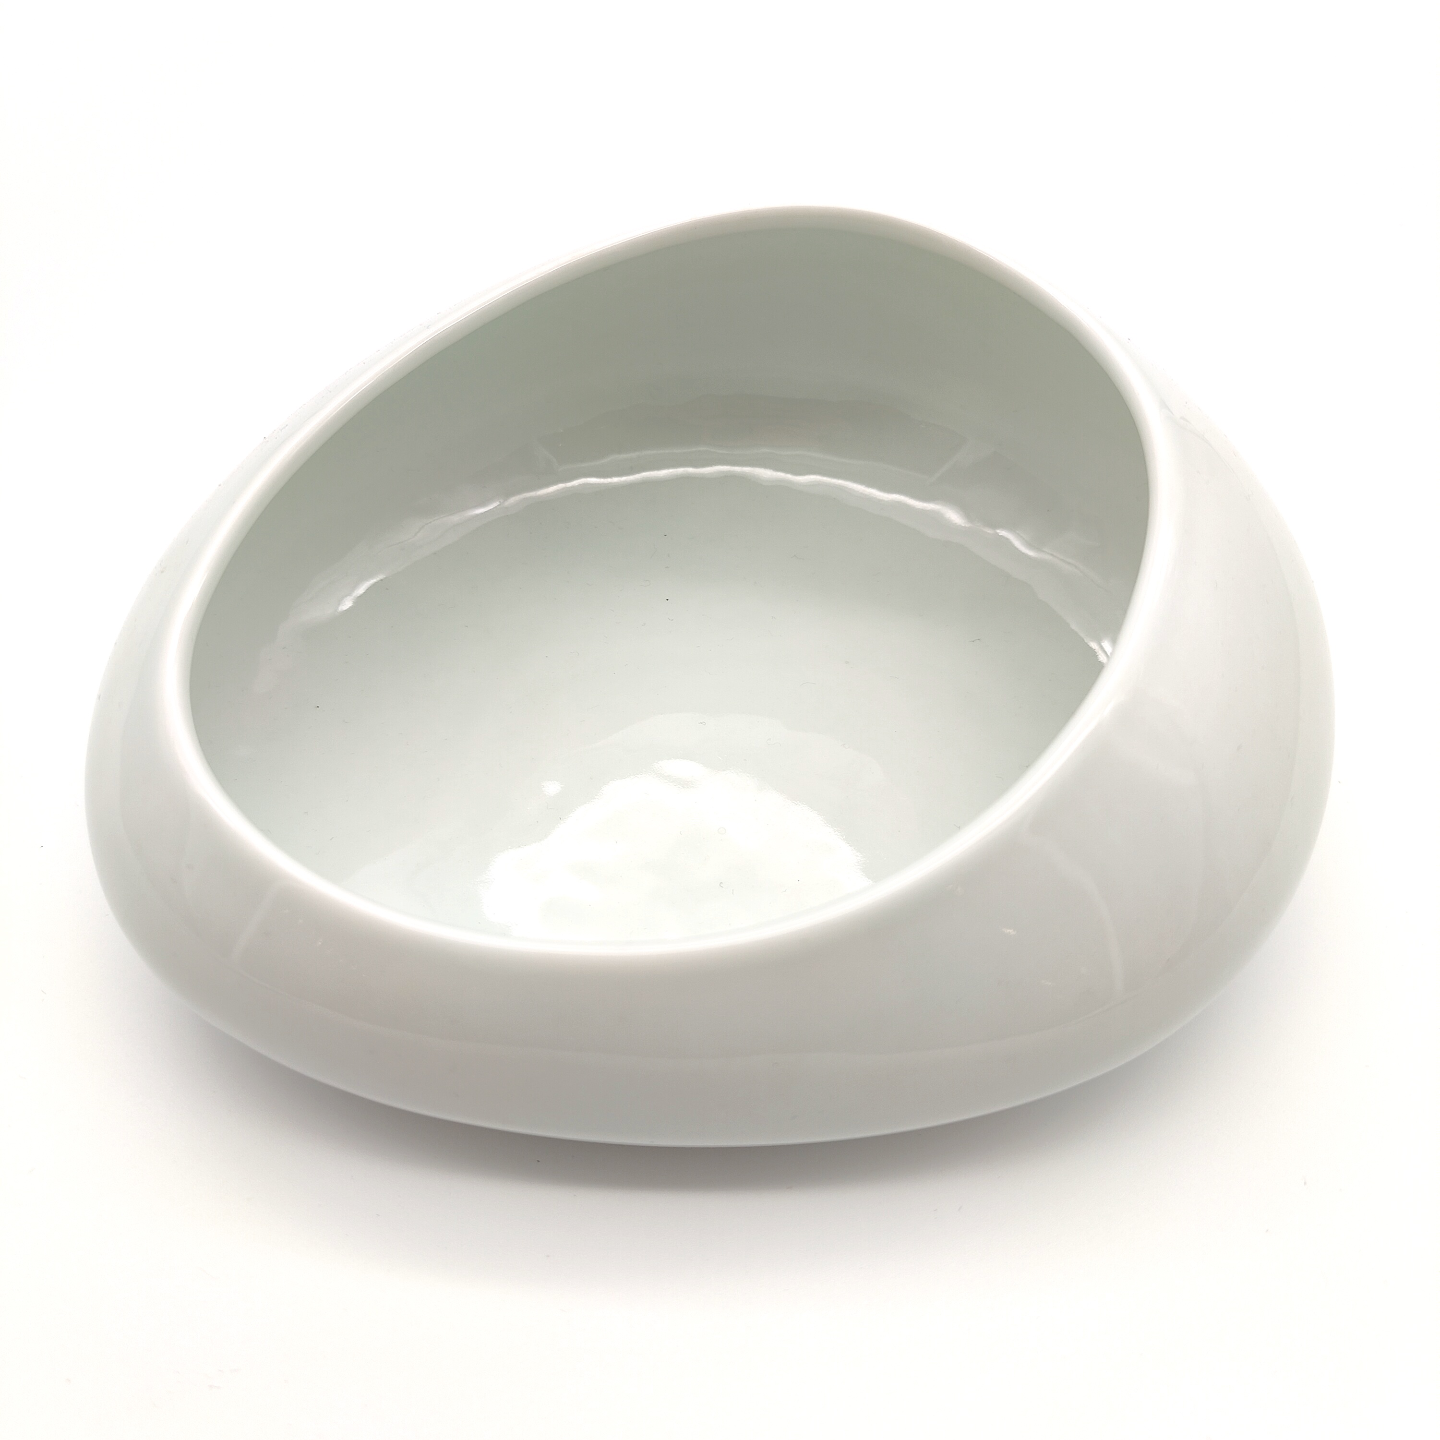 Green White Cobble Stone Bowls-11